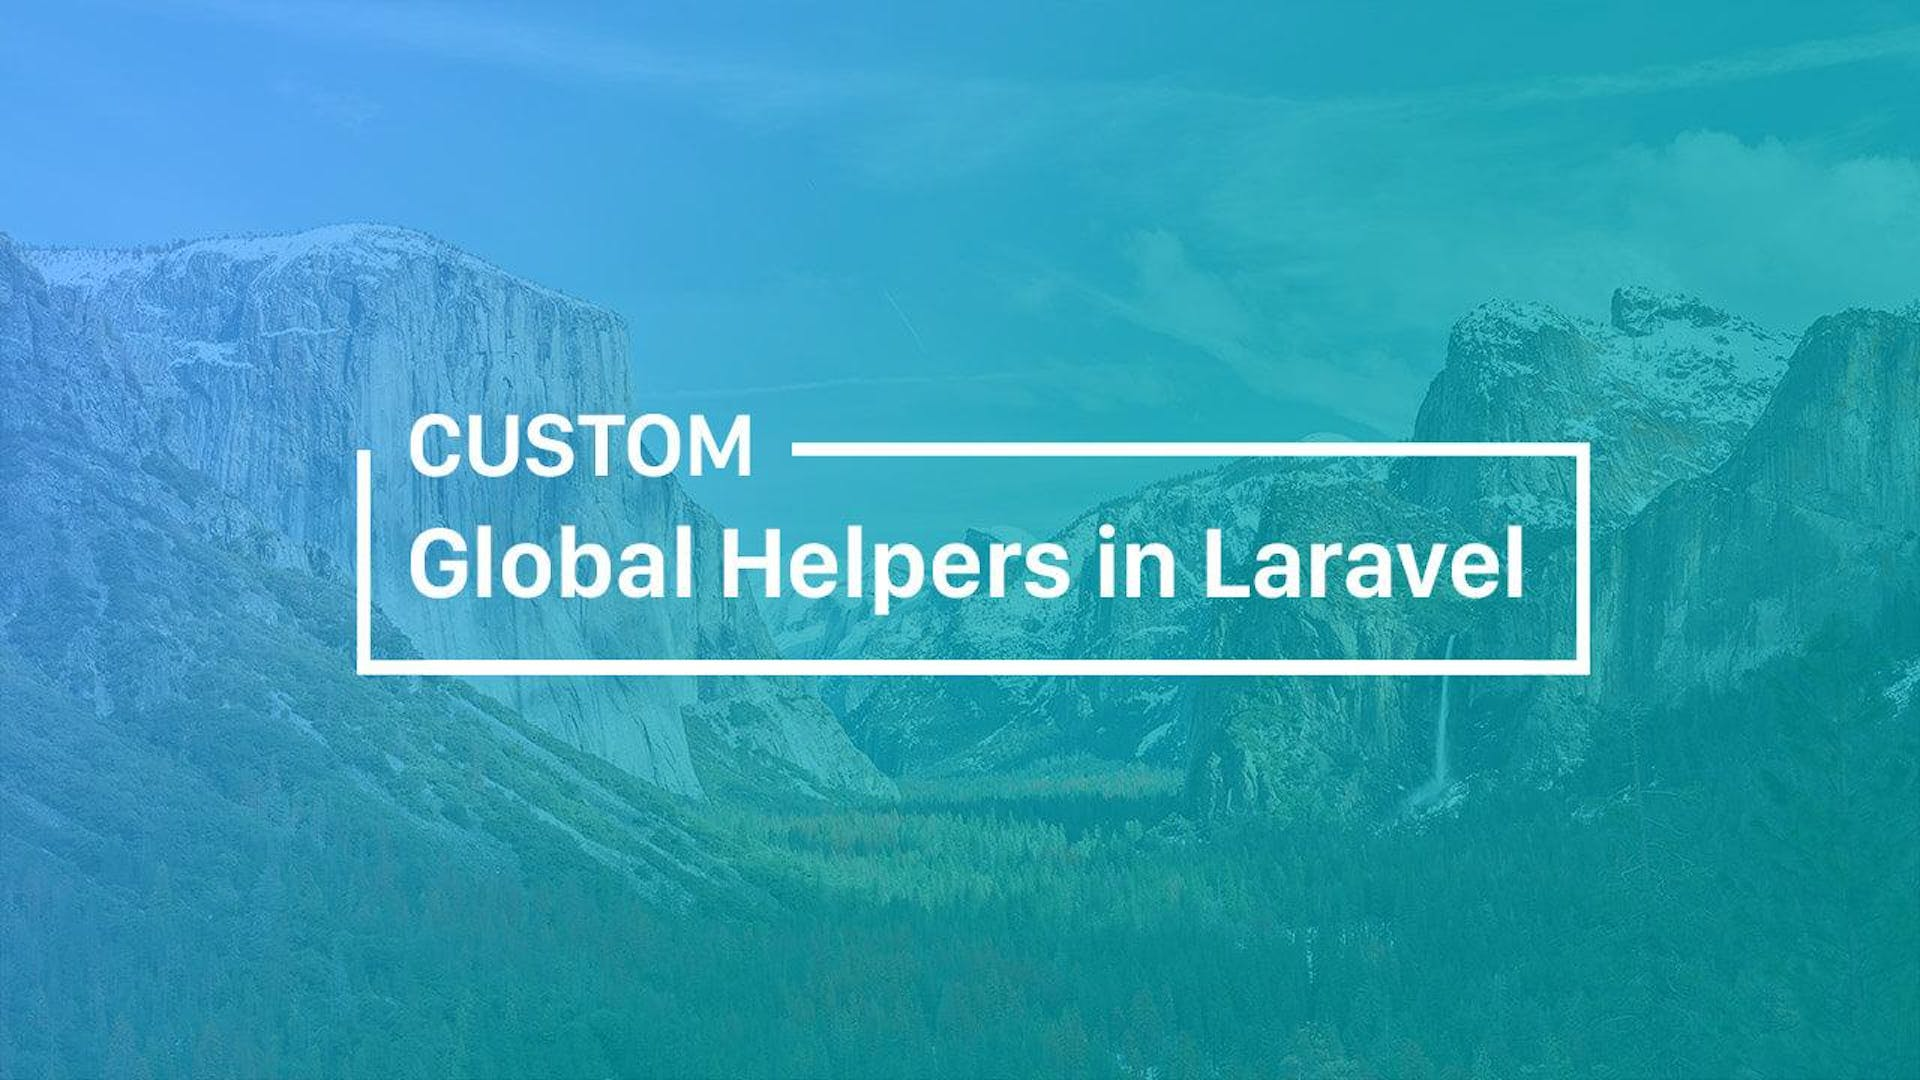 Custom Global Helpers in Laravel